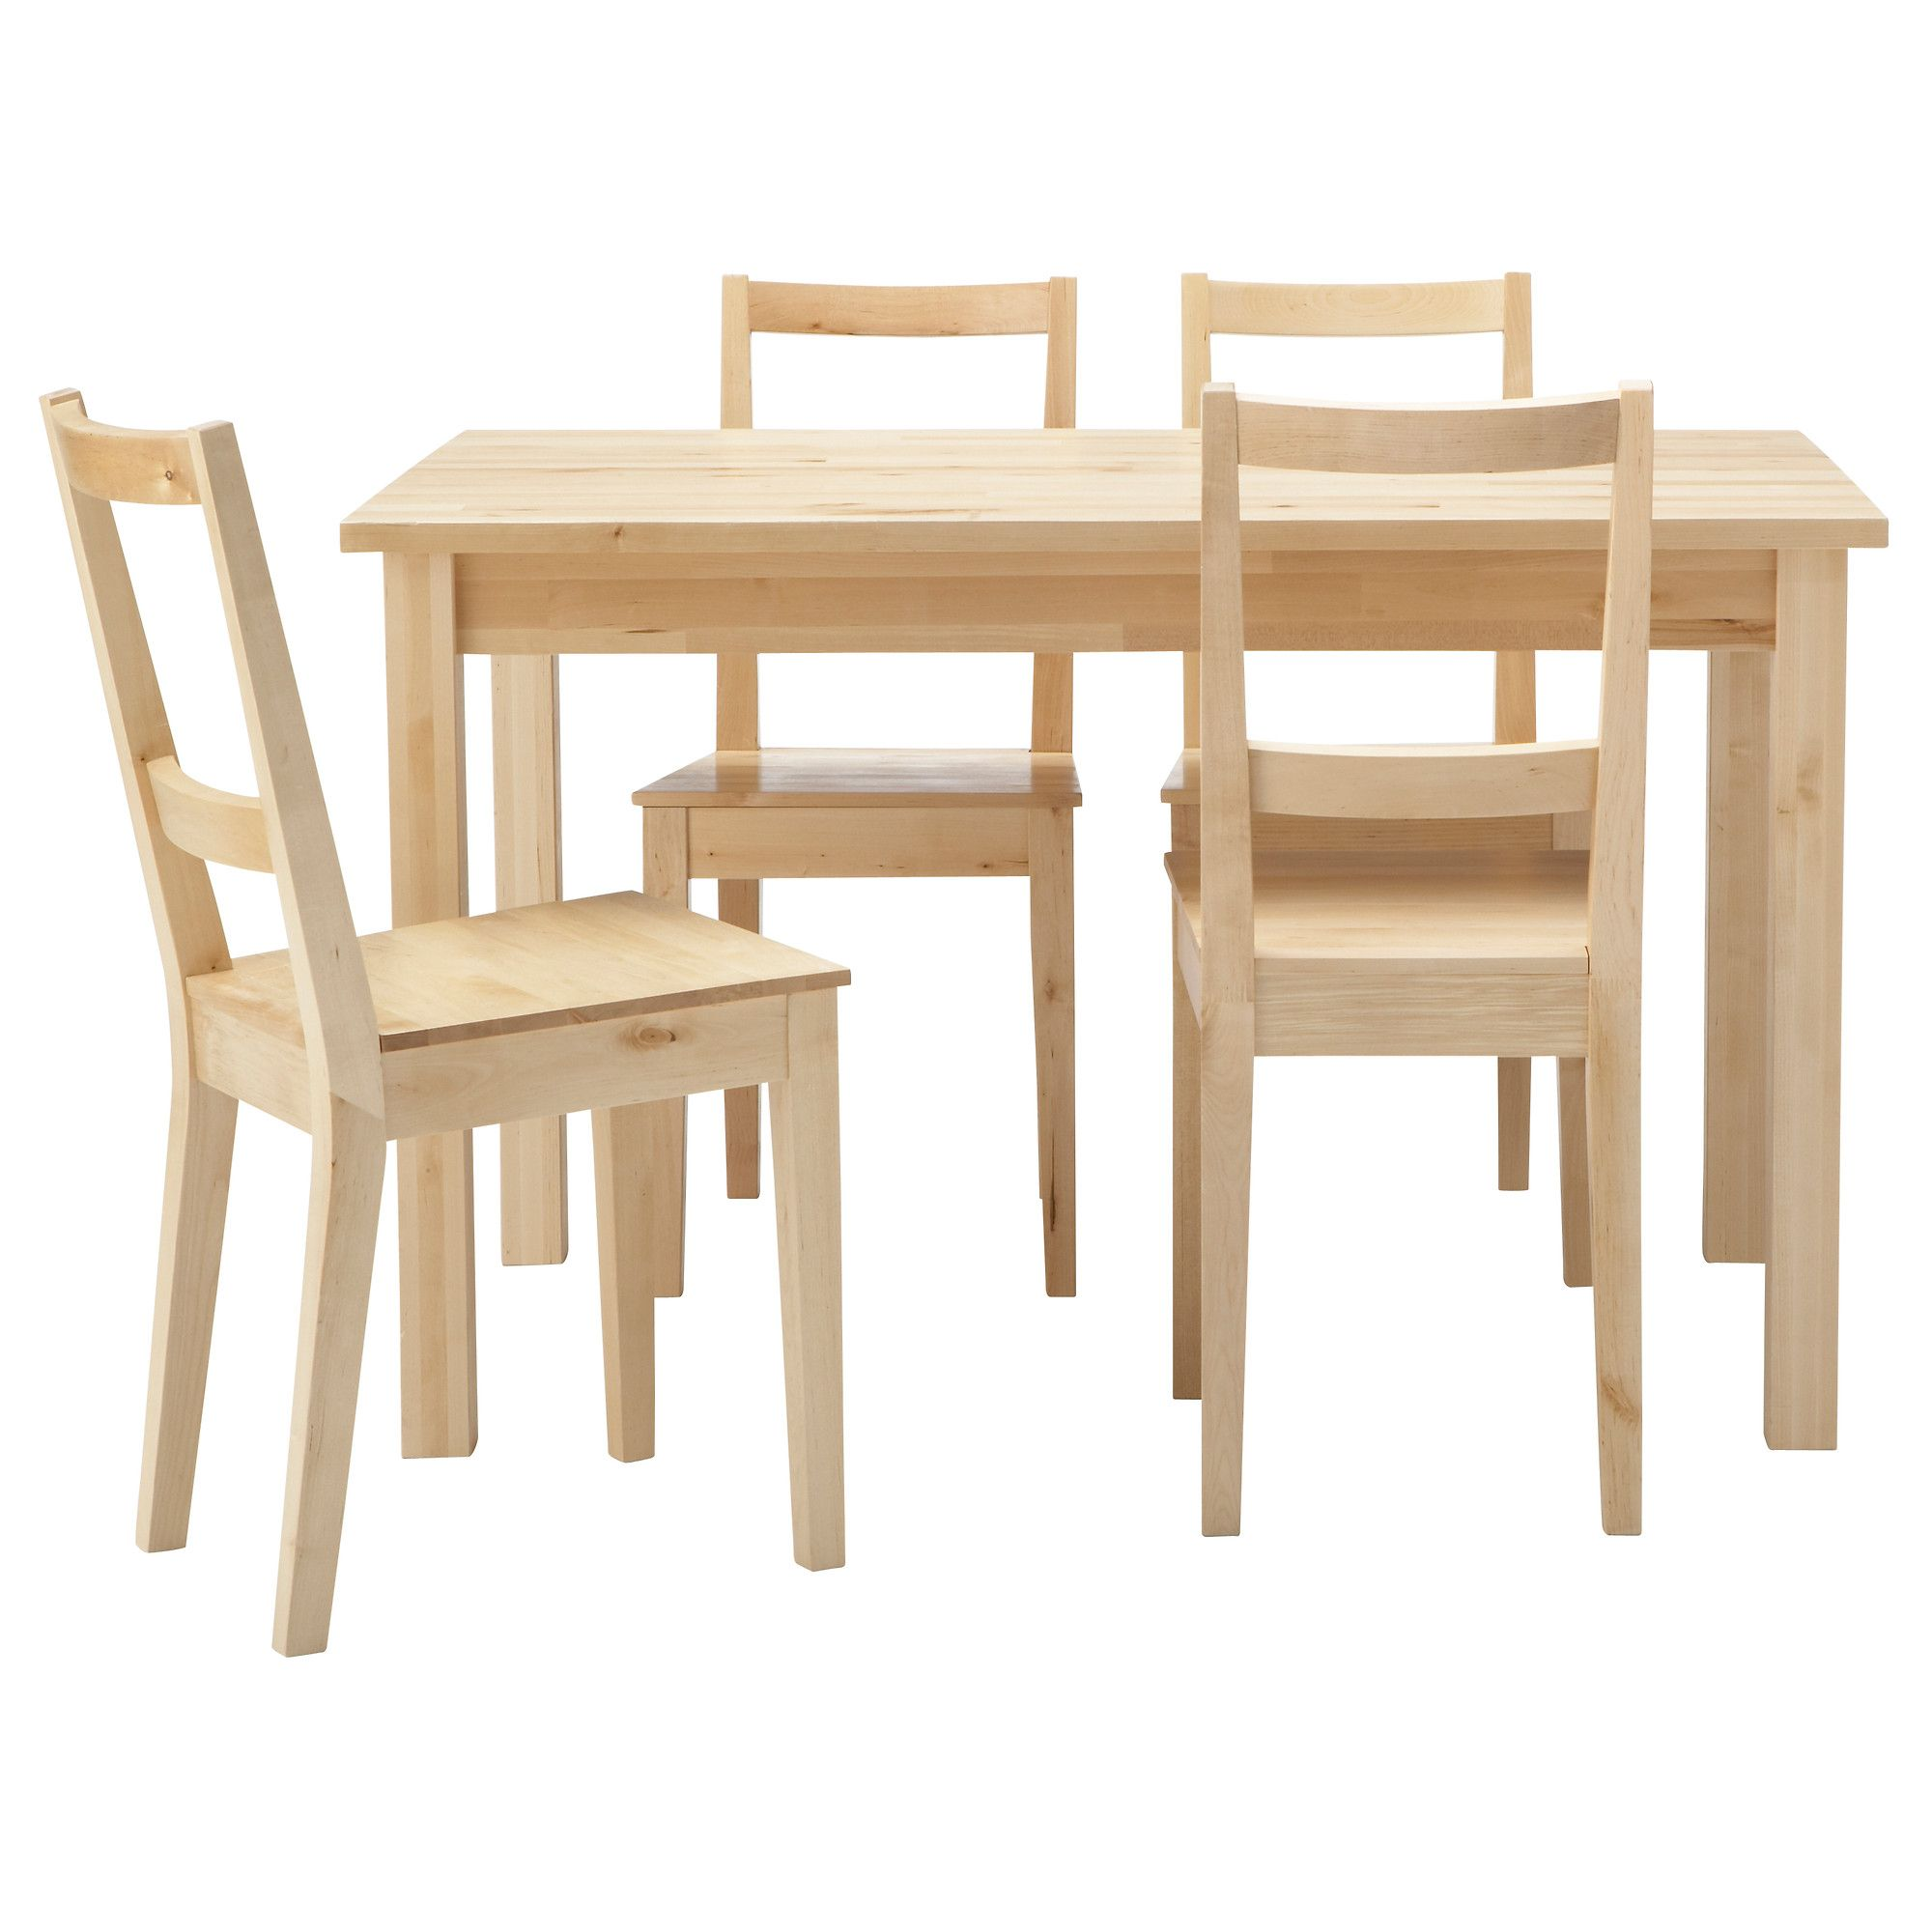 ikea small table and chairs do i need chair covers for my wedding dining room furniture appealing sets with